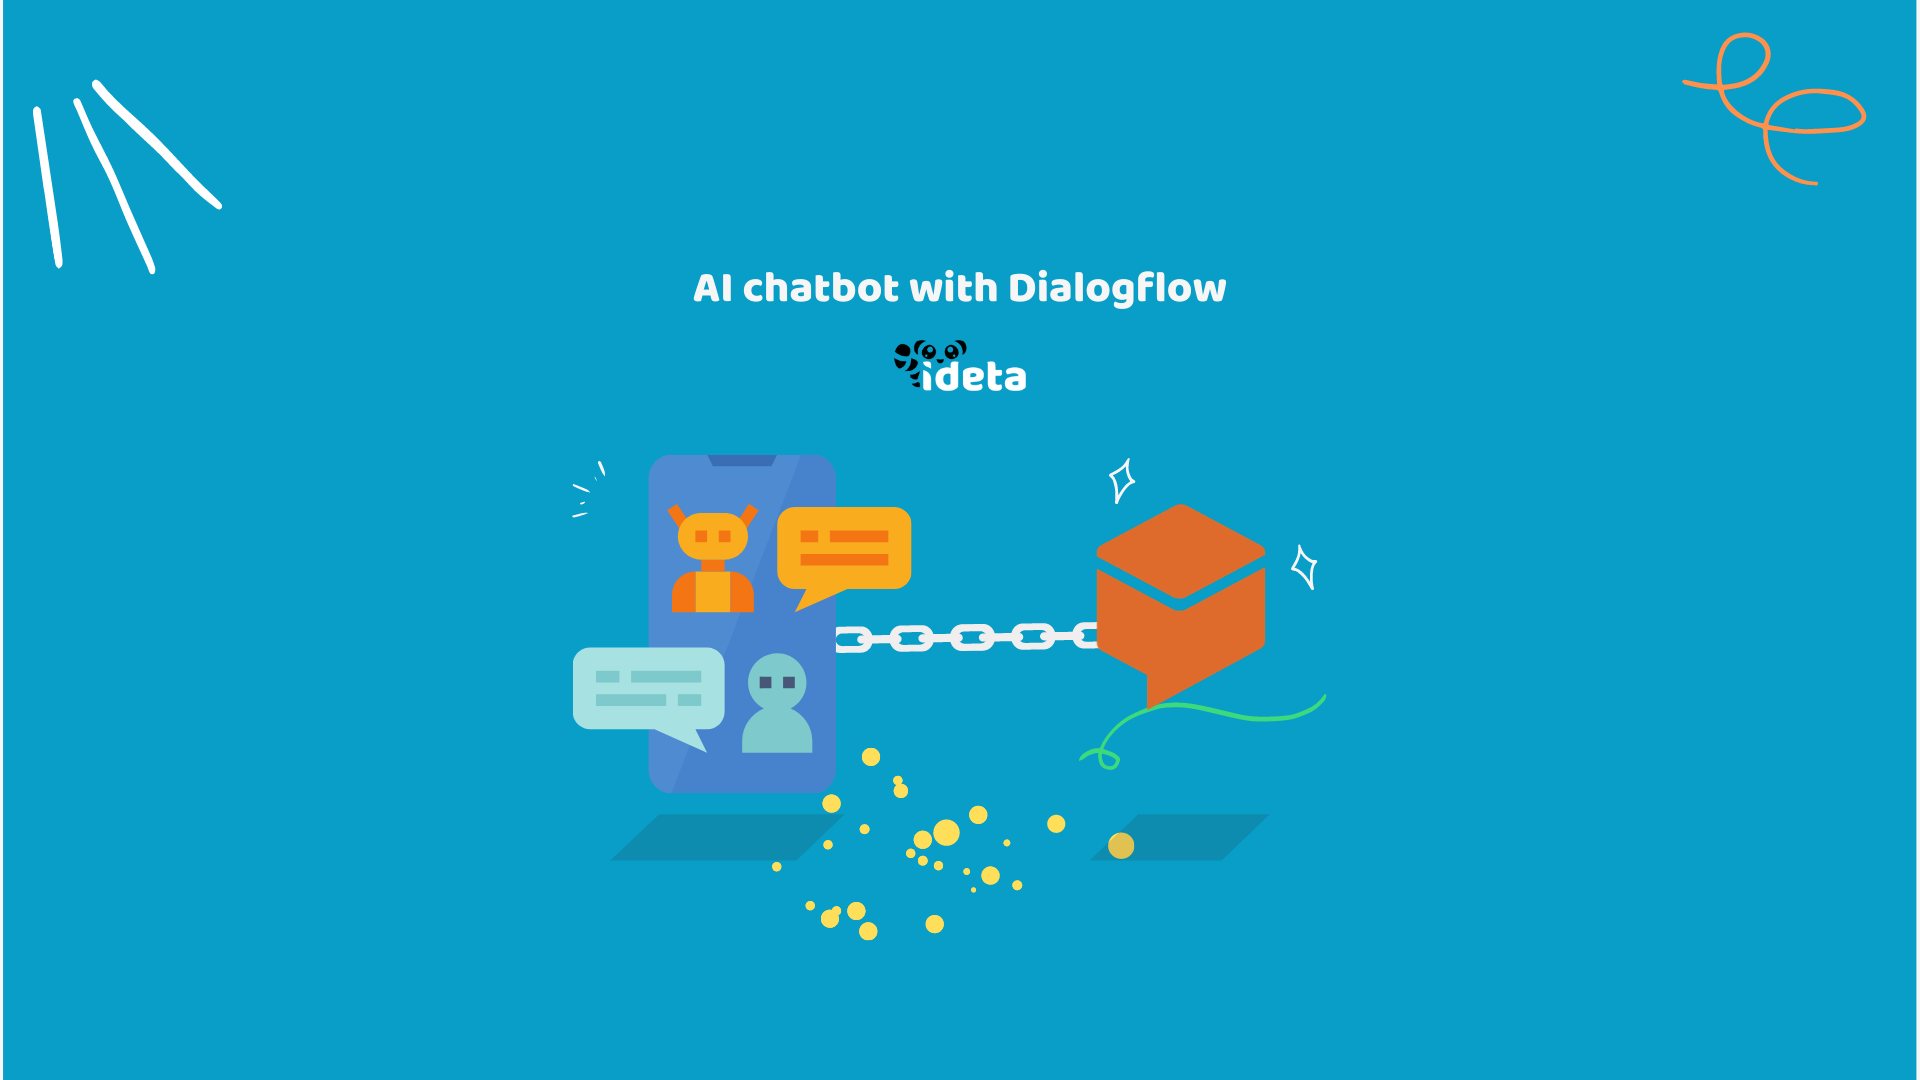 How to build a high-performance Chatbot with Dialogflow?